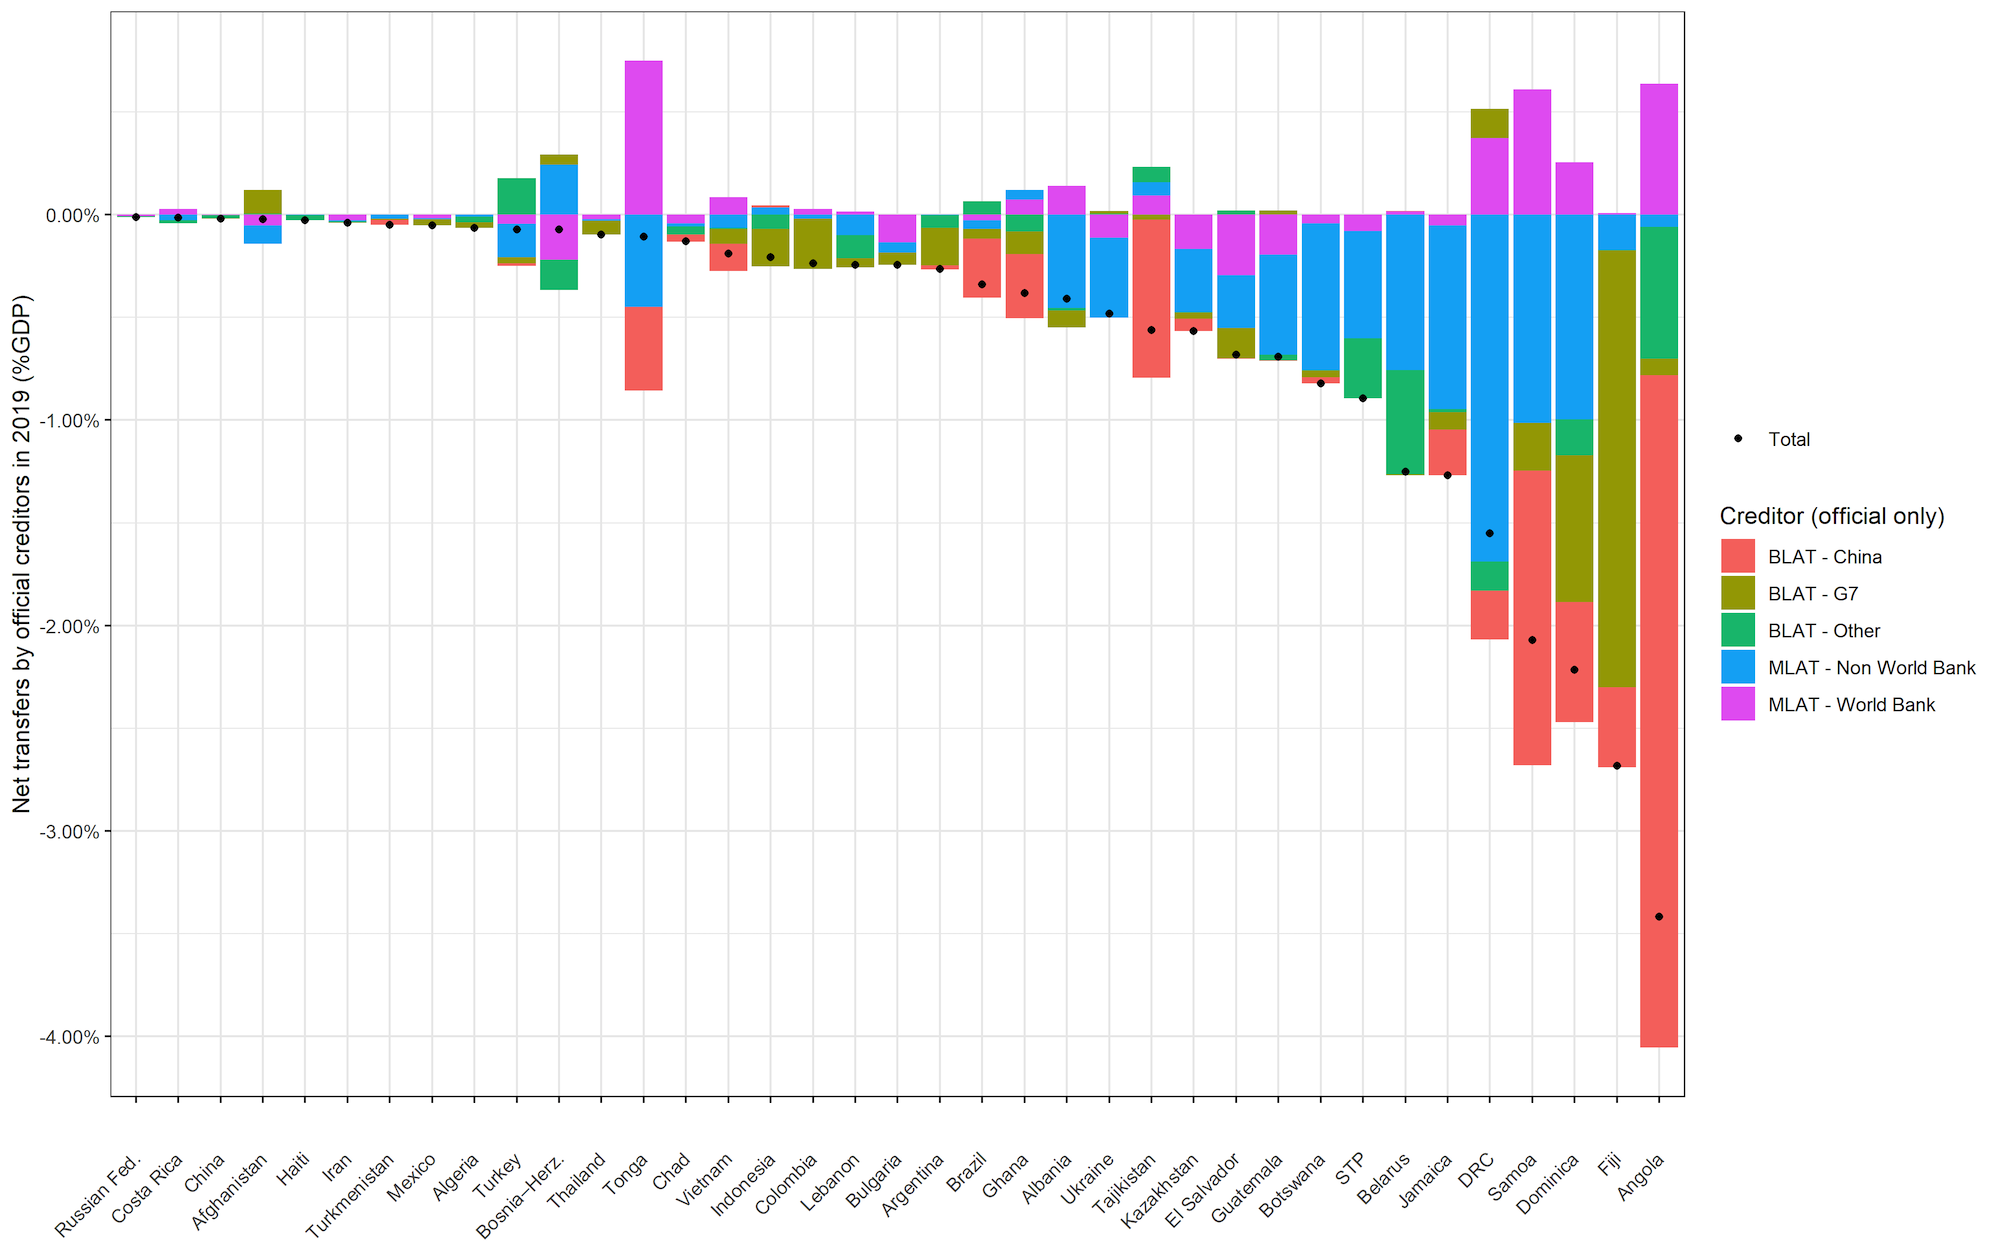 Chart showing countries where net flows are negative. Angola is the highest, driven by repayments mostly to China